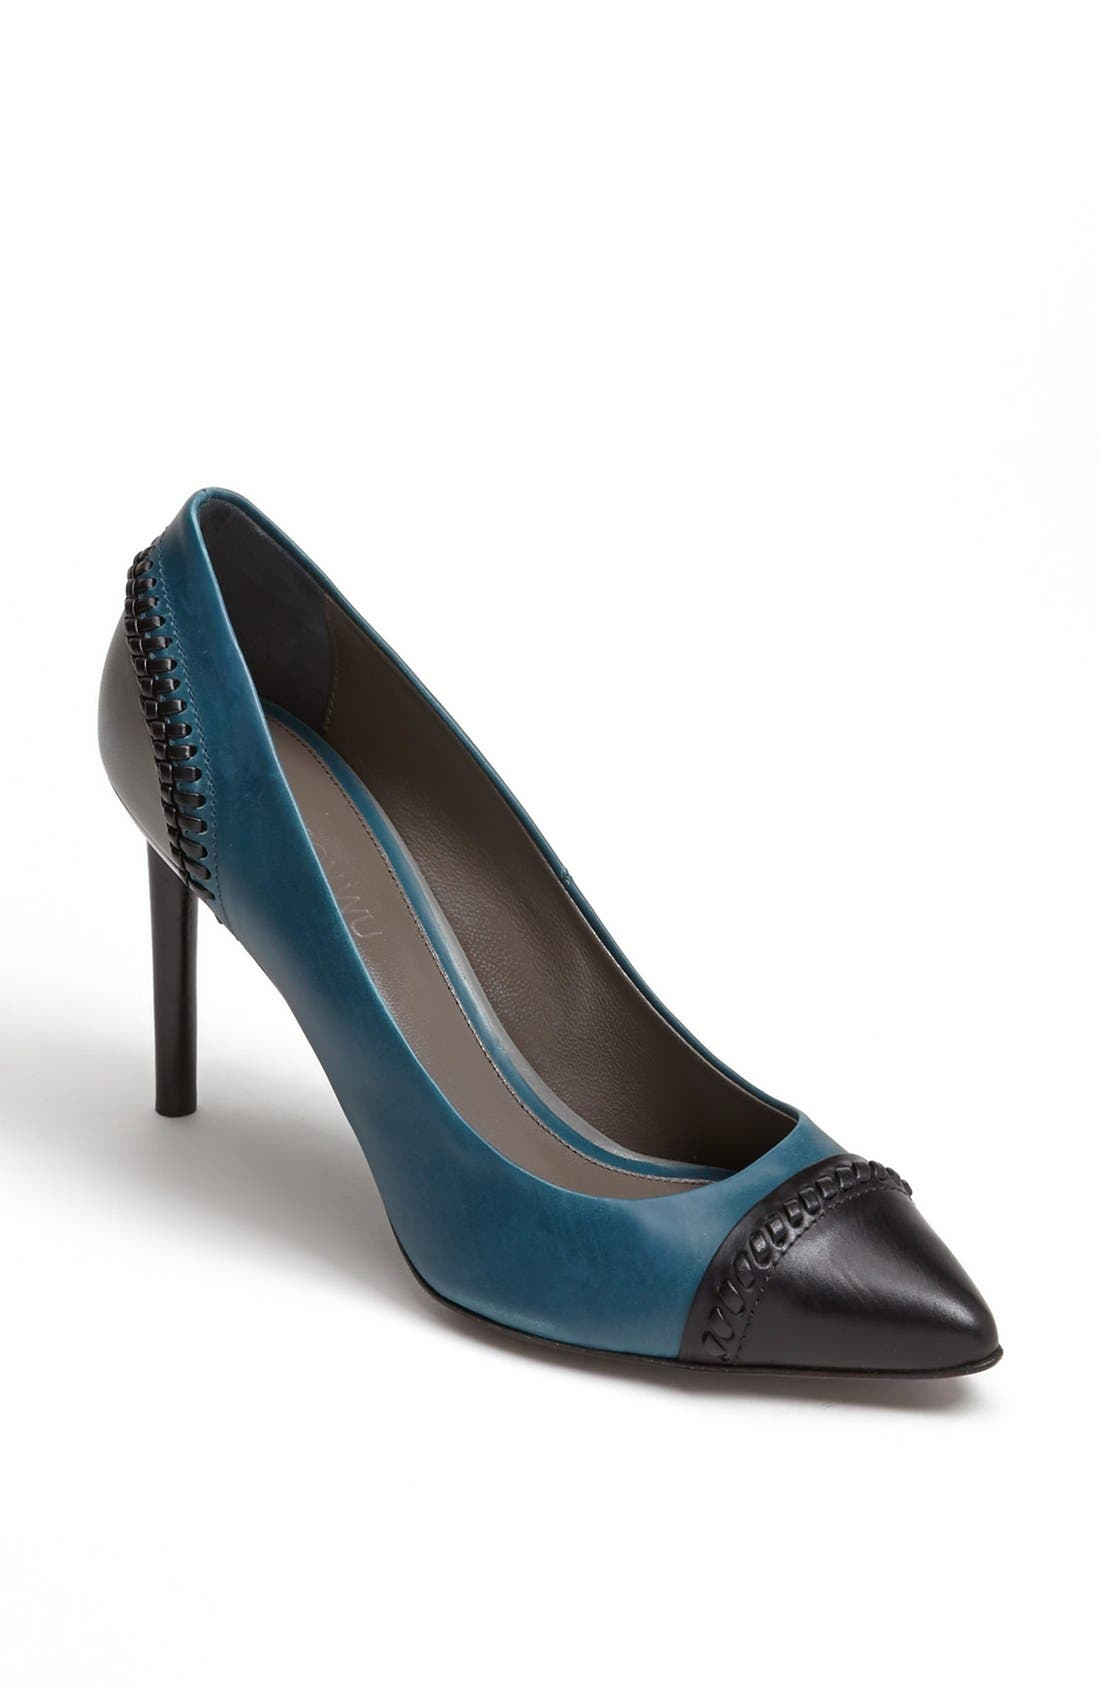 Alternate Image 1 Selected - Jason Wu 'Lily' Pump